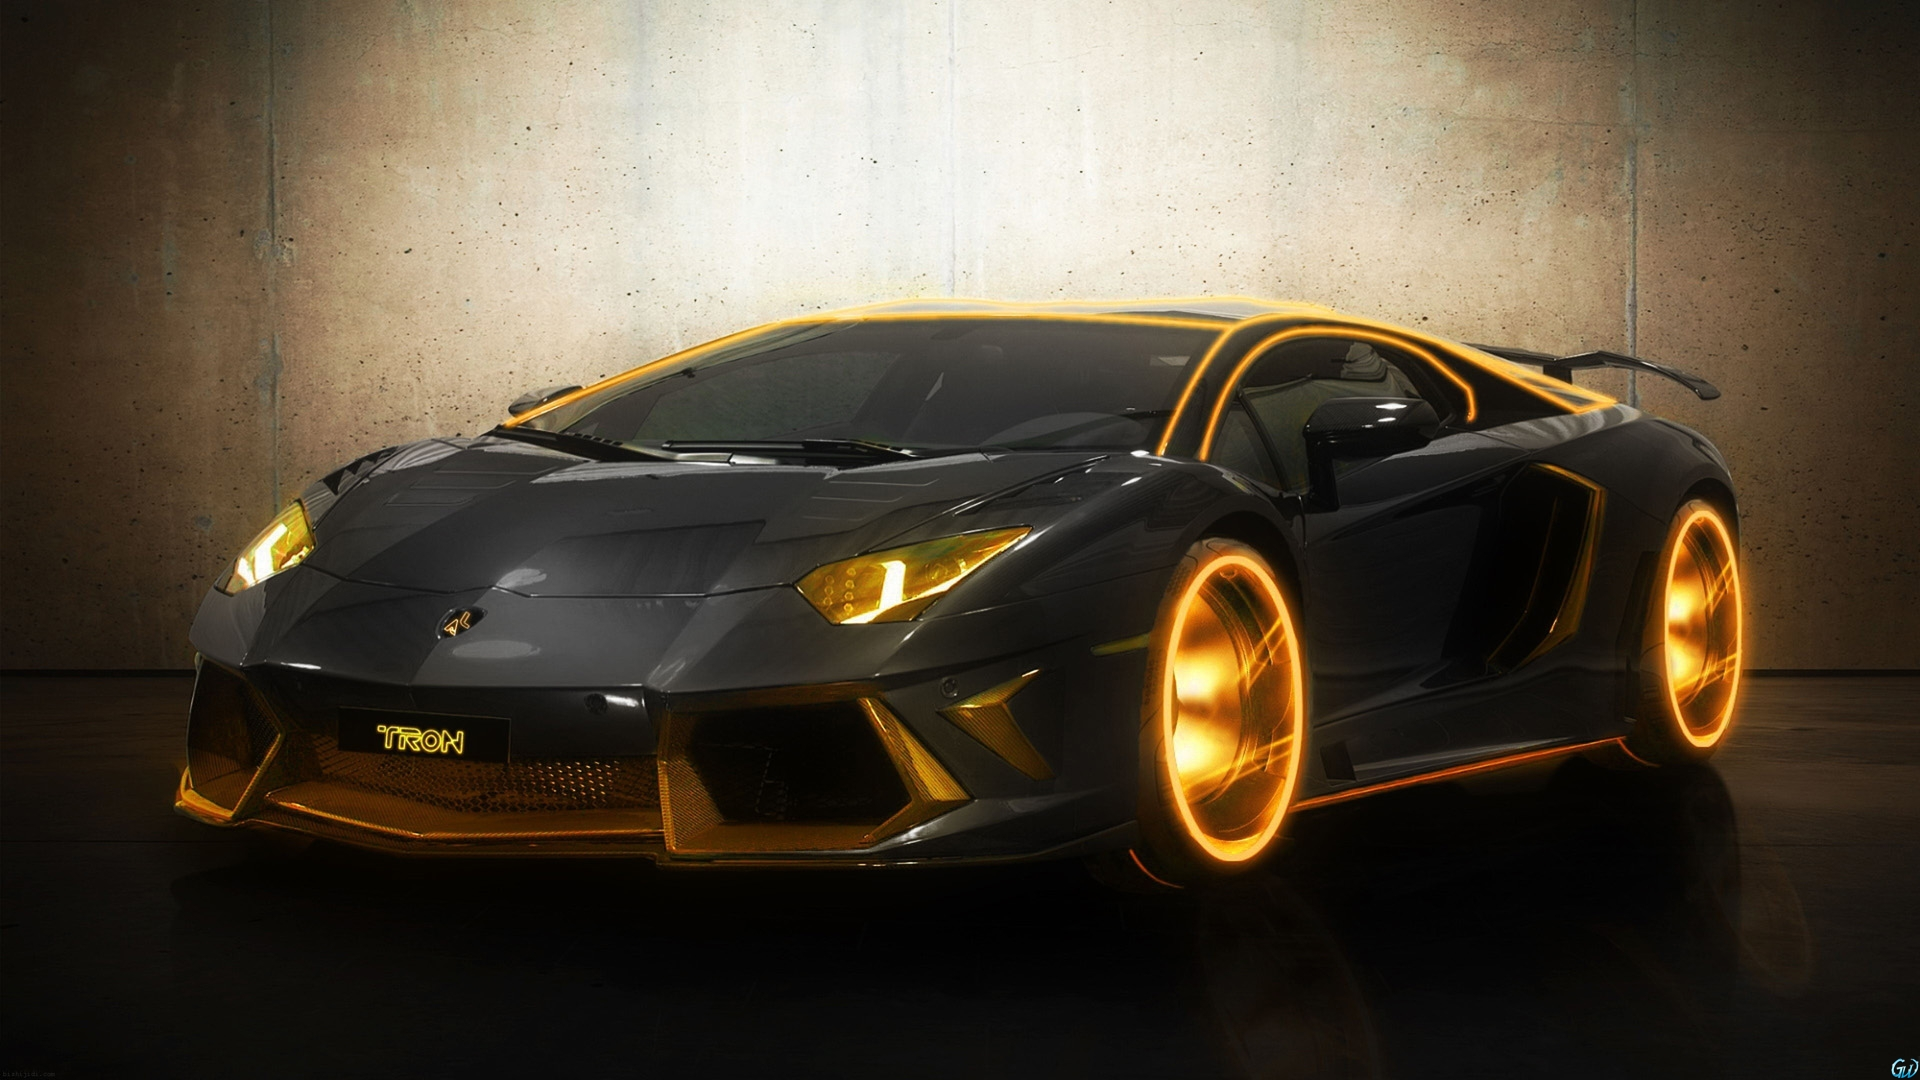 Best Friendship Quotes Hd Wallpapers Lamborghini Aventador Most Expensive